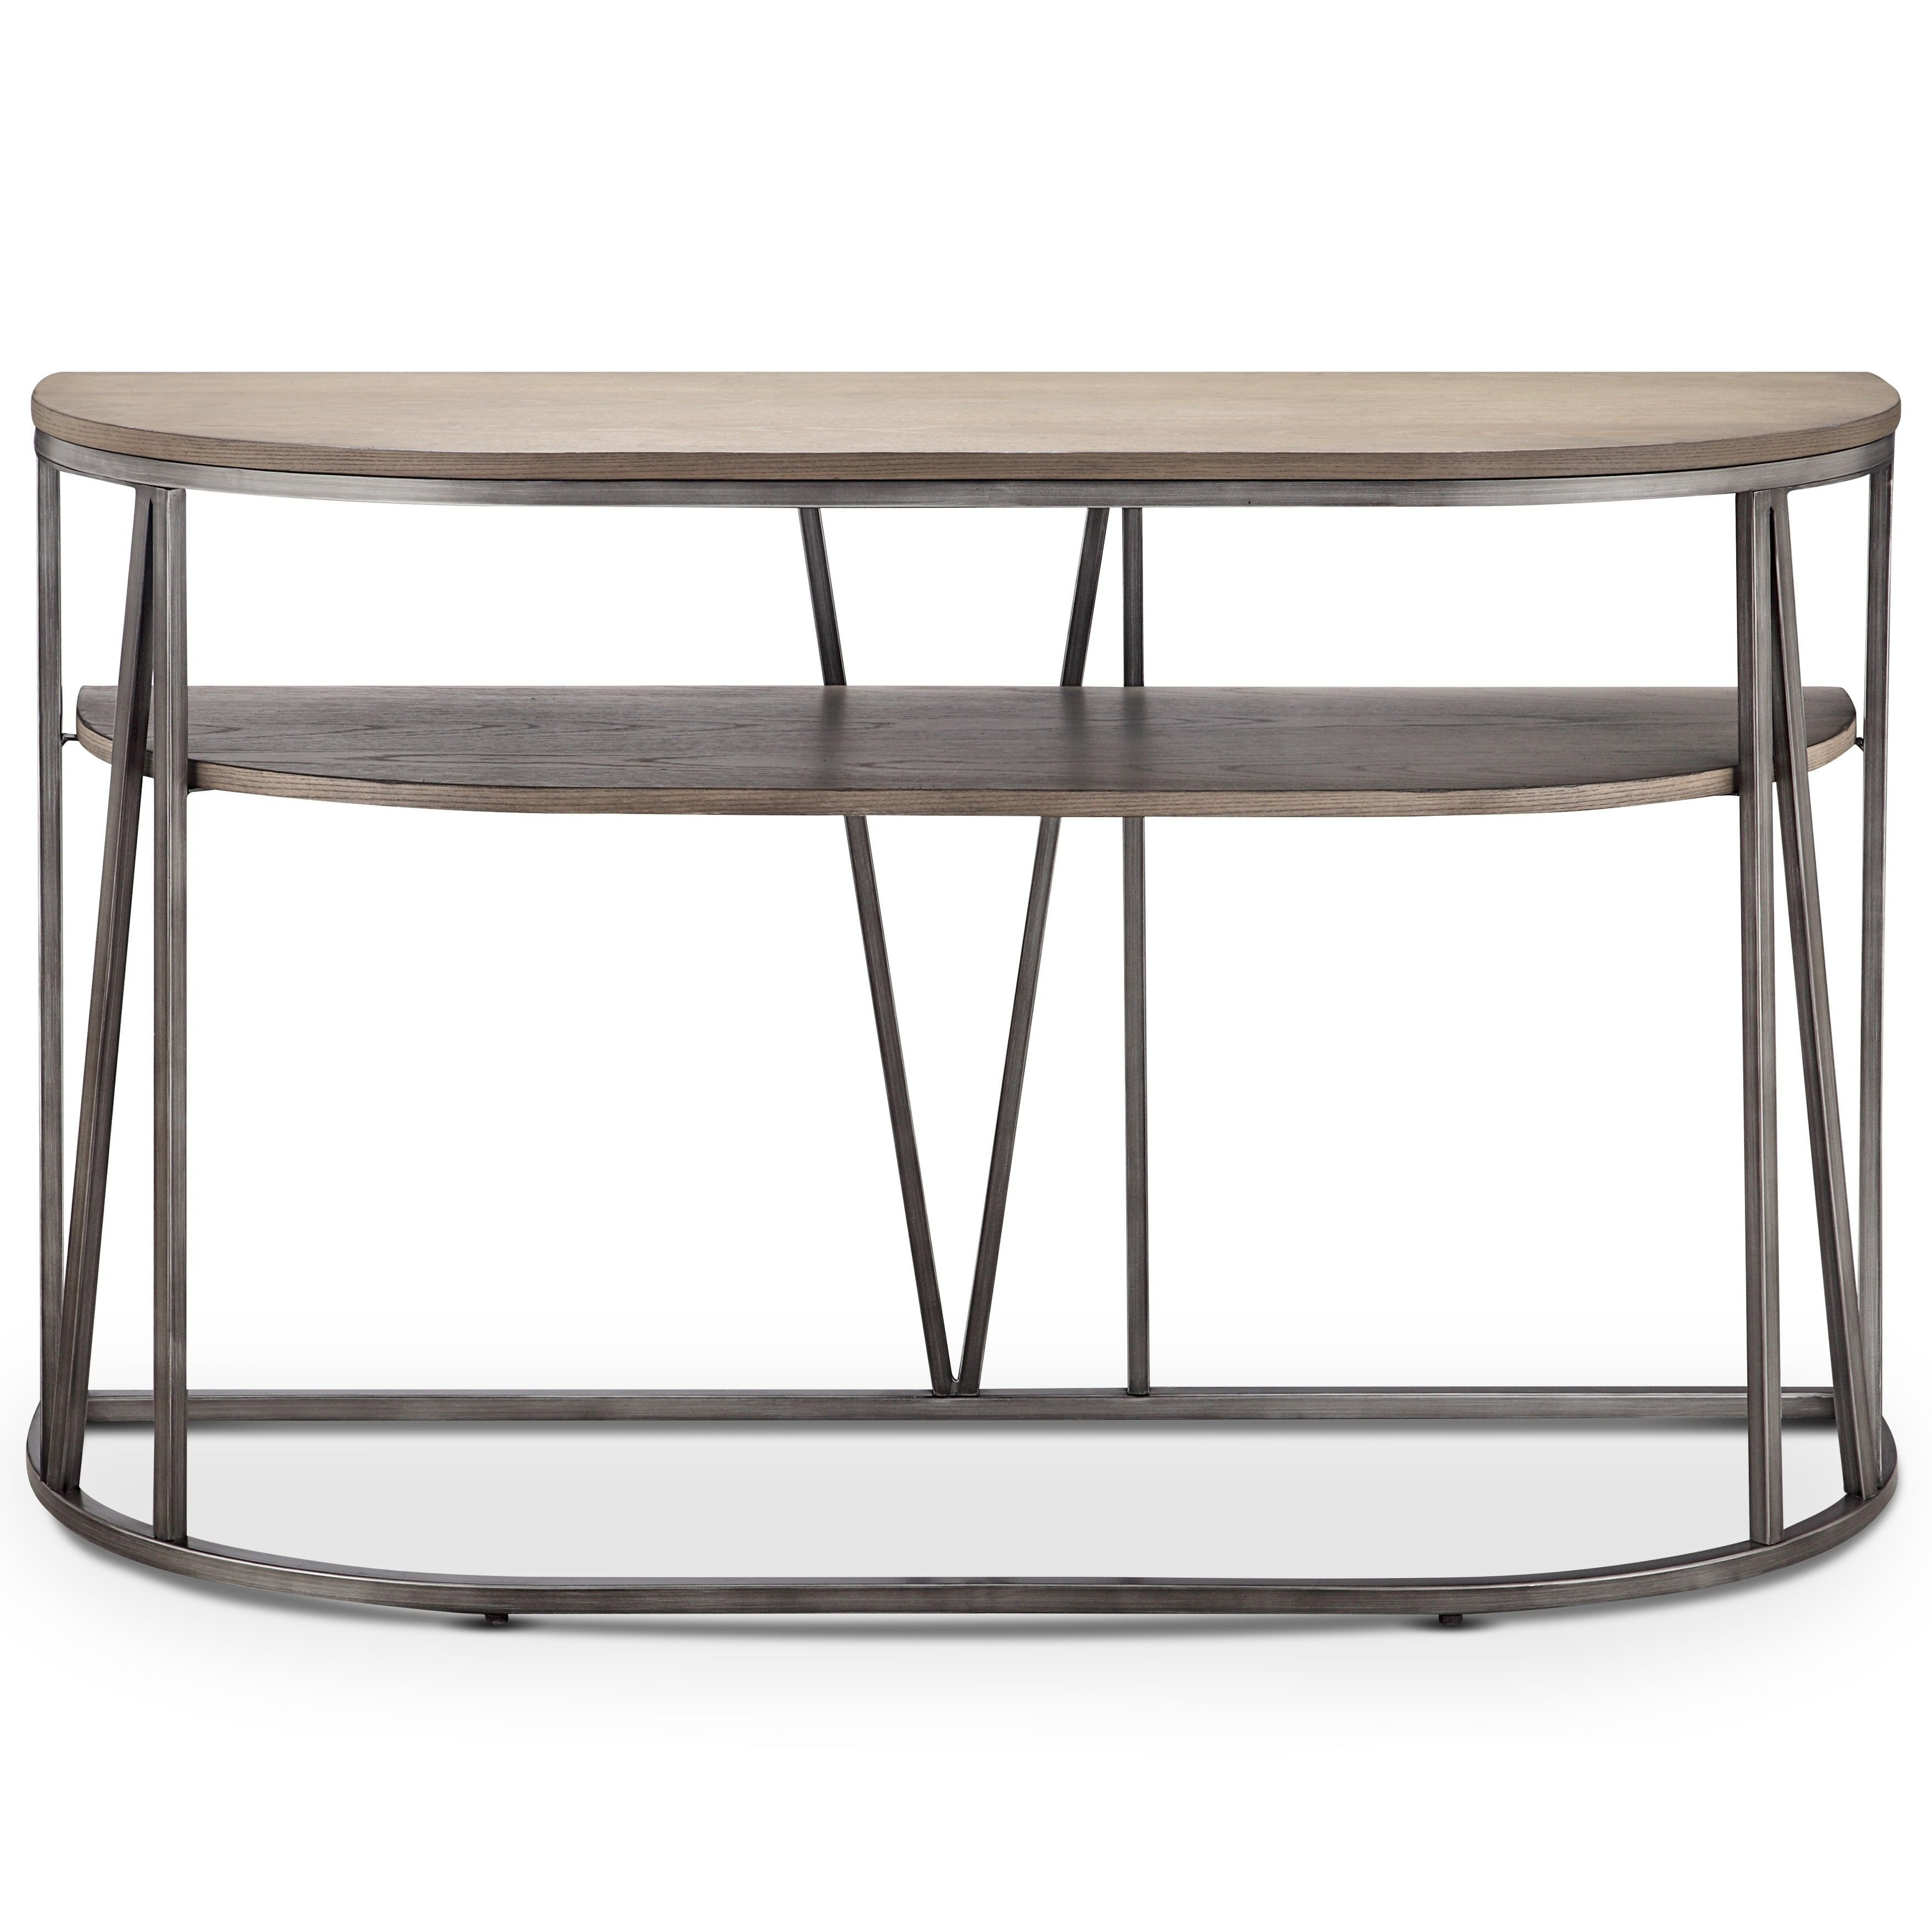 Magnussen Home Furnishings Avalon Modern Weathered White Oak with Yukon Grey Console Tables (Image 14 of 30)